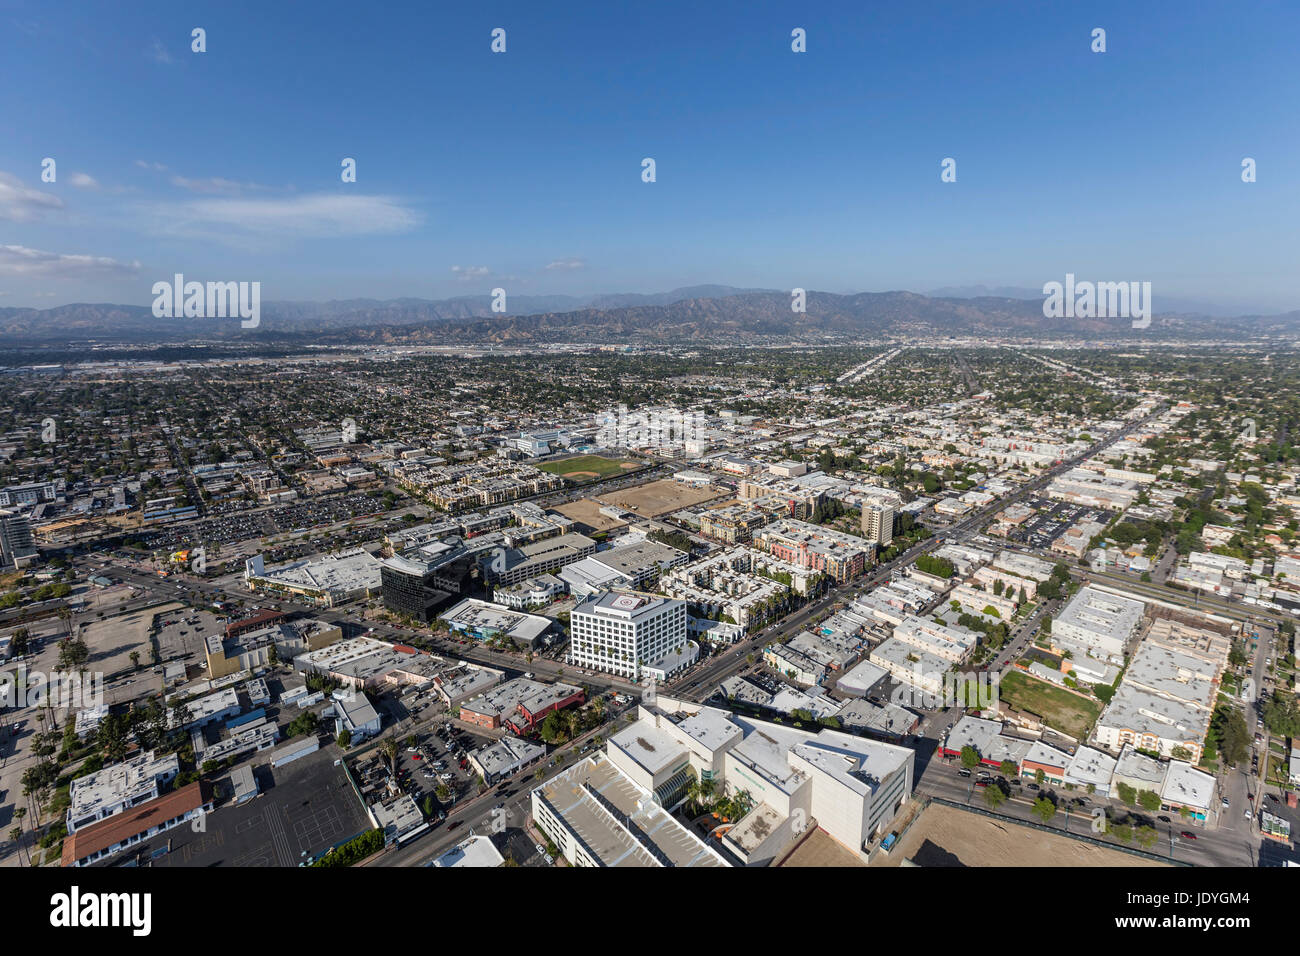 Aerial view of North Hollywood in the San Fernando Valley